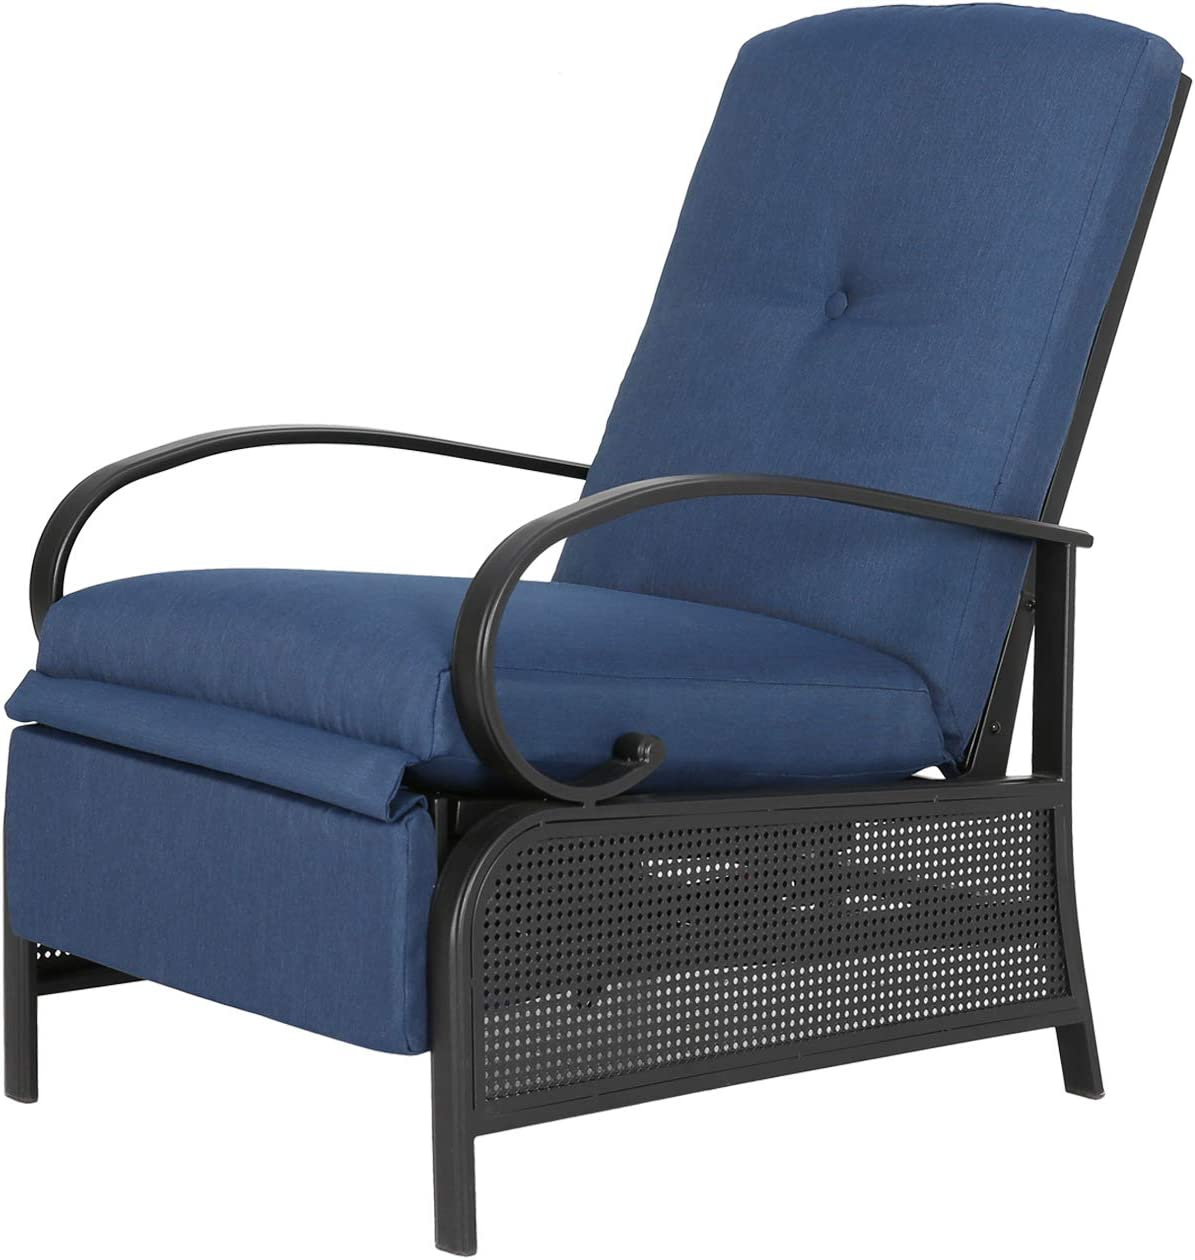 Ulax Furniture Patio Recliner Chair Automatic Adjustable Back Outdoor Lounge Chair with 100% Olefin Cushion (Navy Blue)